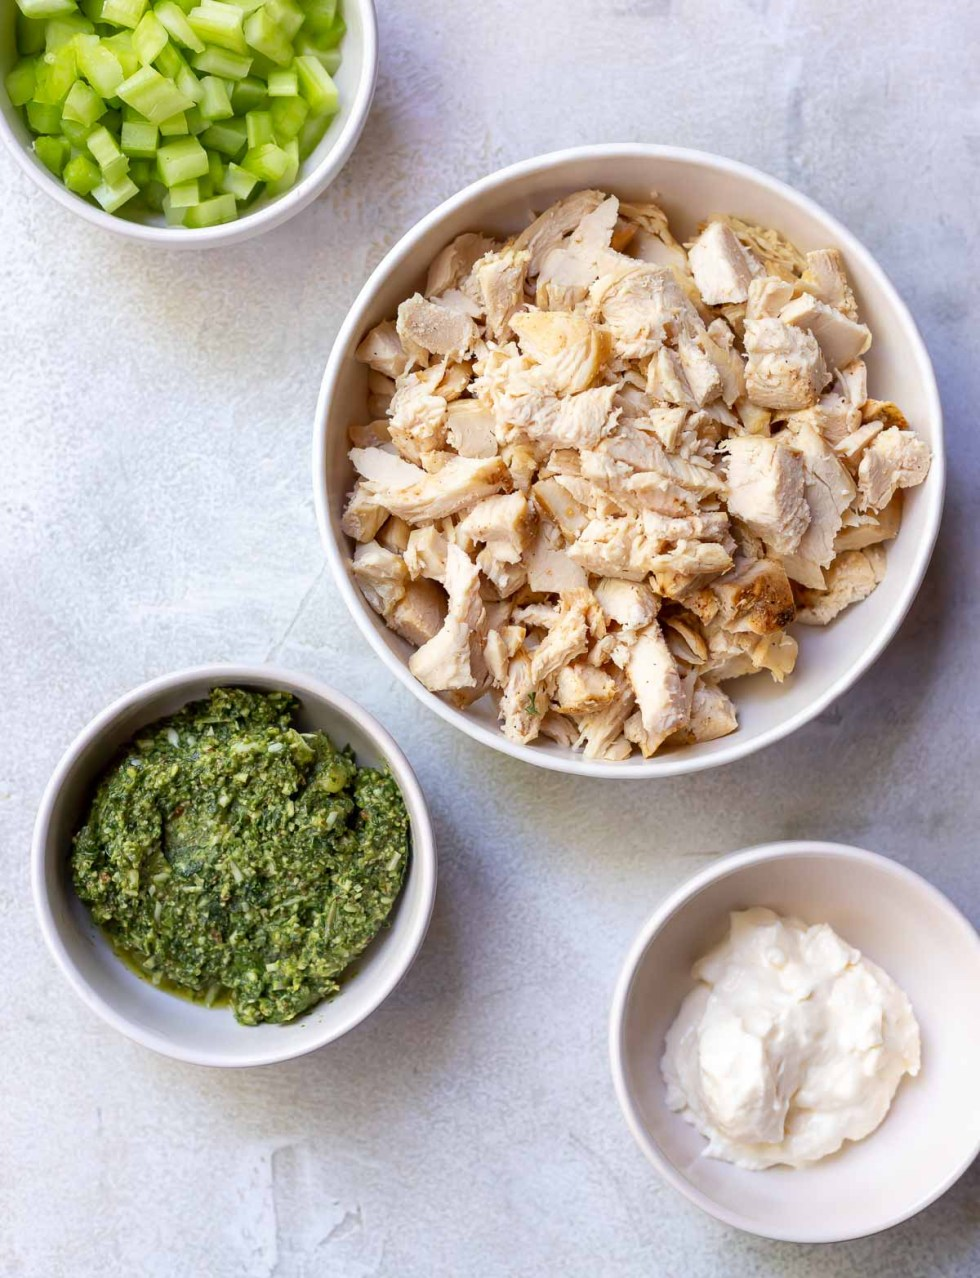 ingredients for chicken salad recipe in white bowls